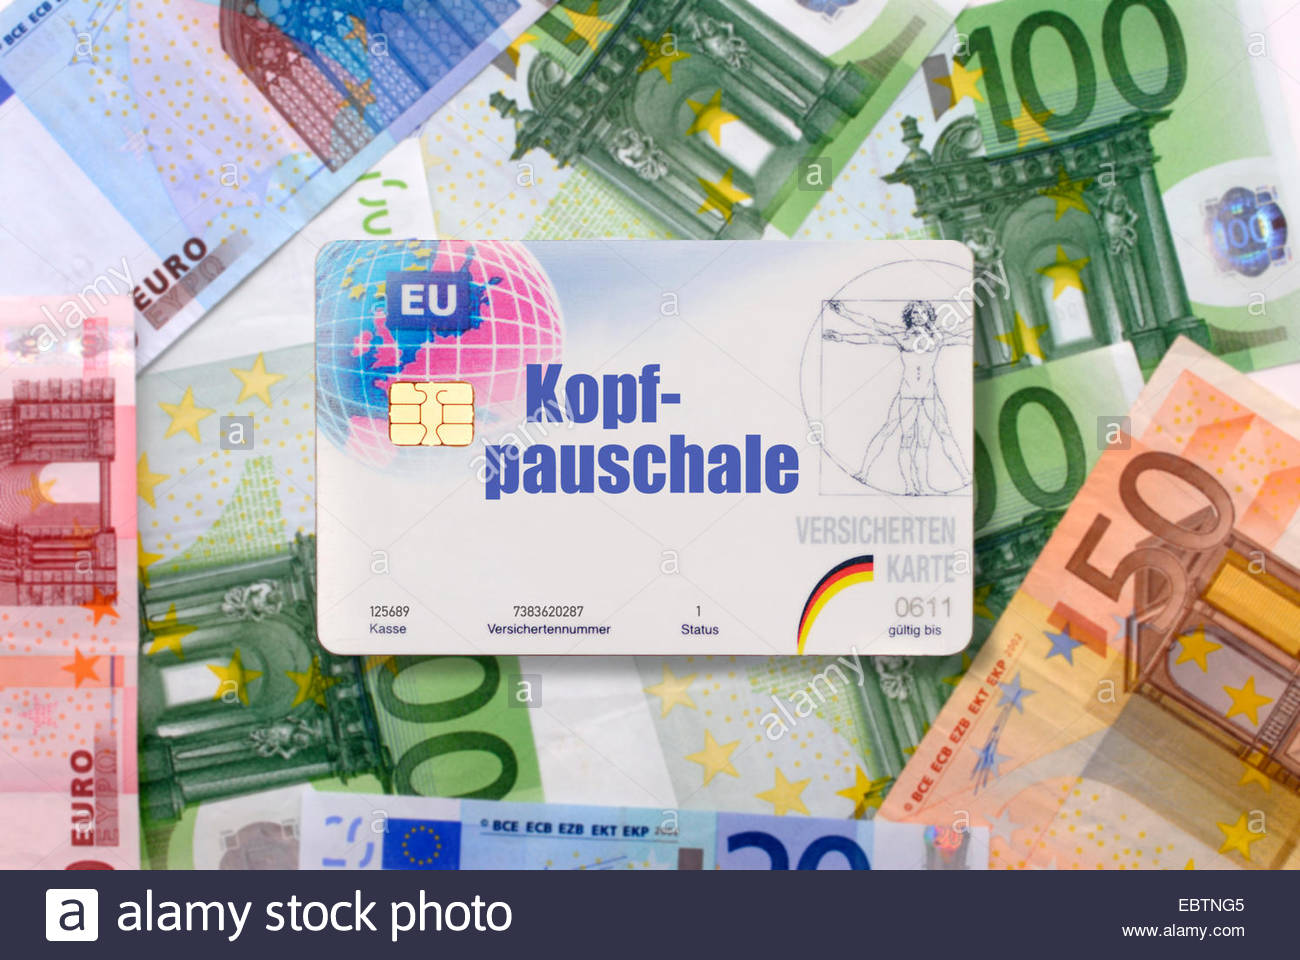 health insurance card with lable capitation fee lying on bills, Germany - Stock Image